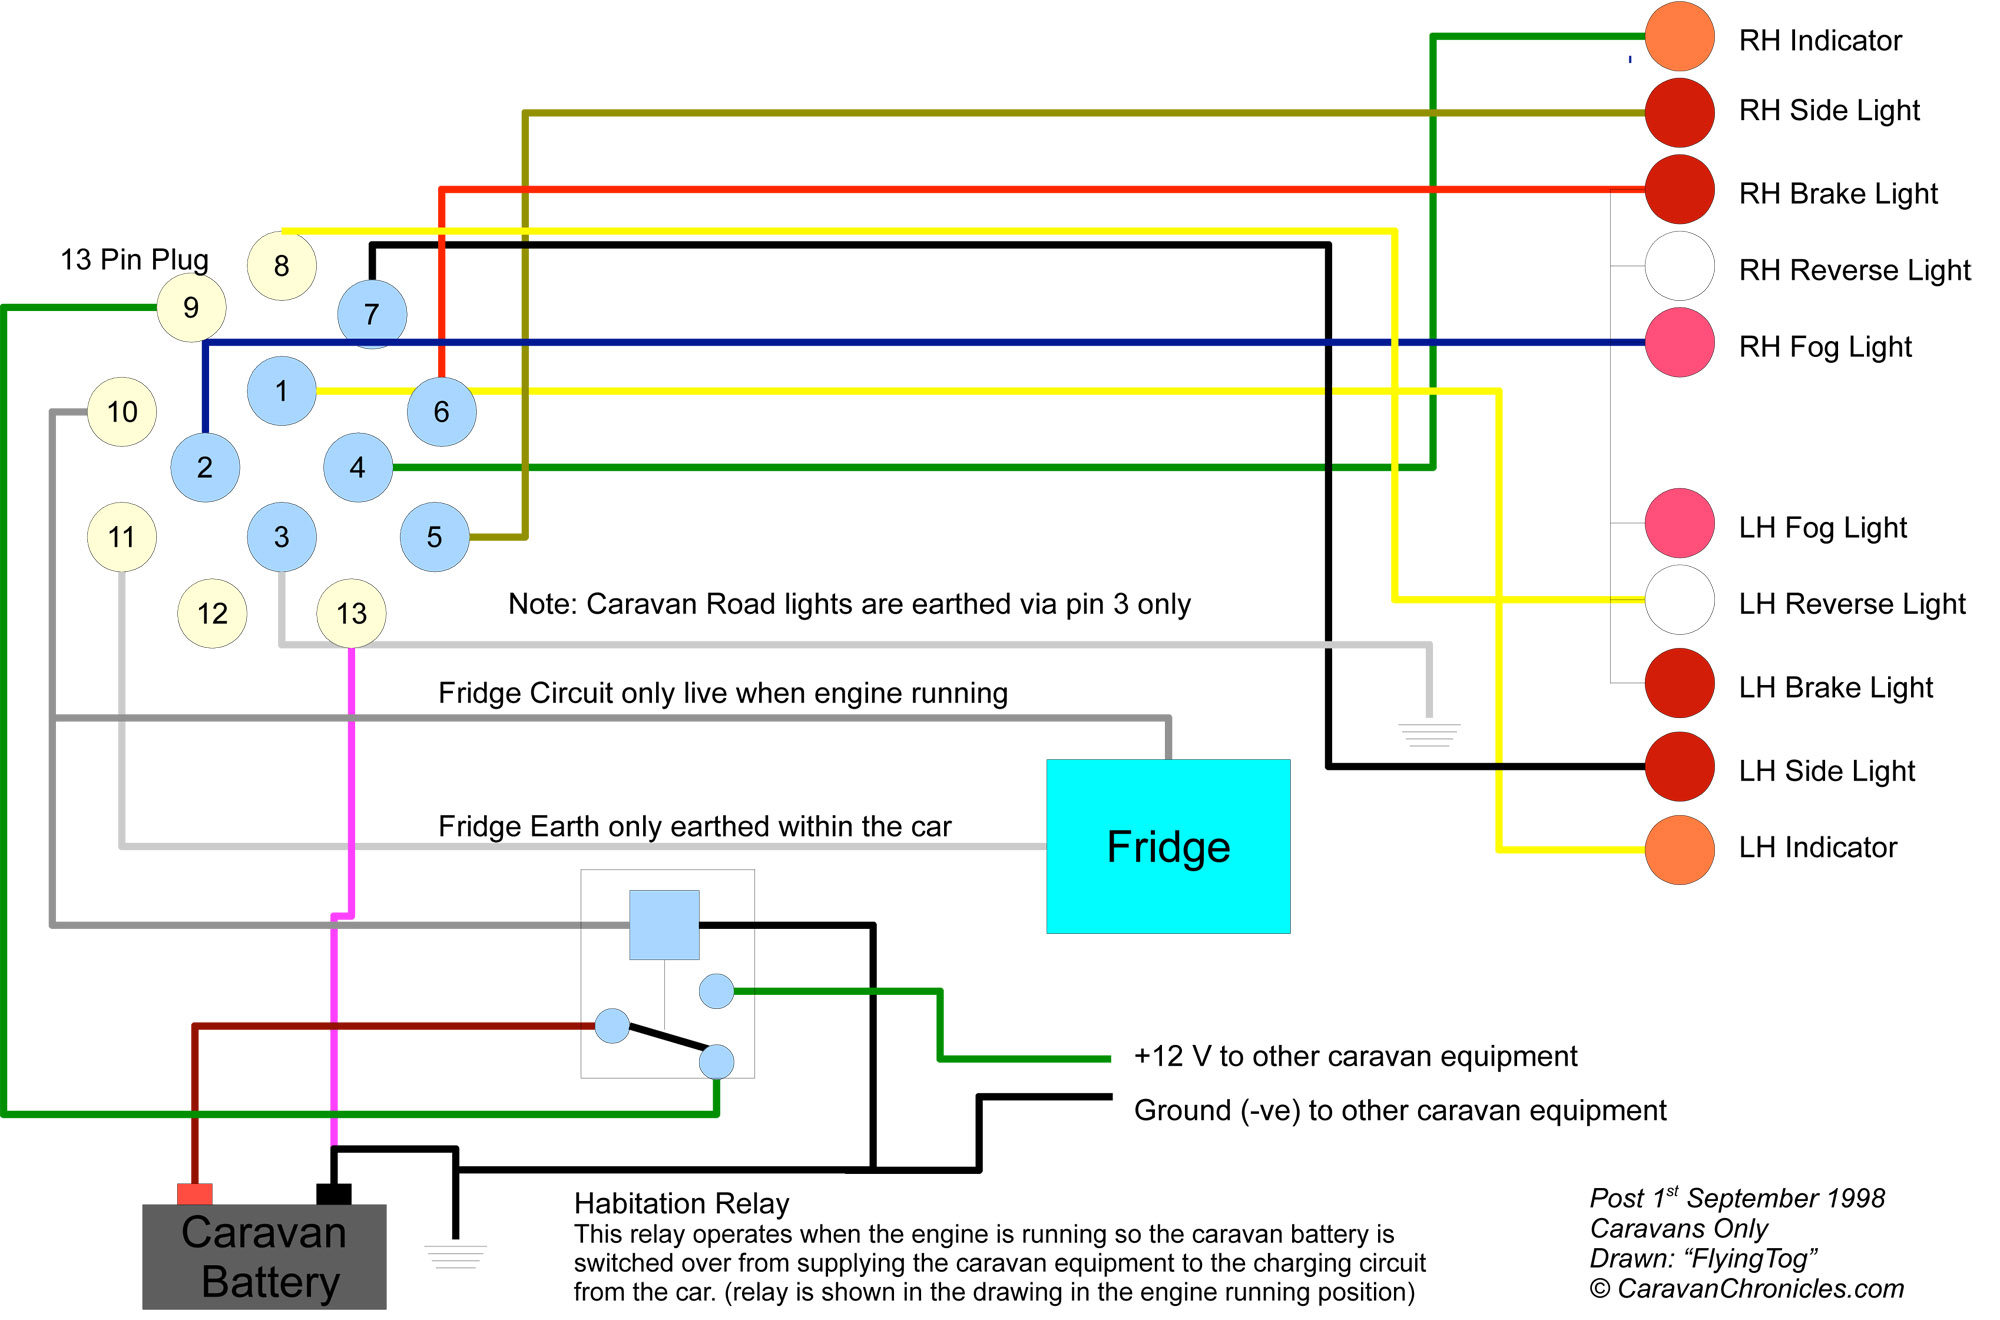 Wiring Diagram For Caravan Electrics Fusion Wiring Diagram – Caravan Electrics Wiring Diagram